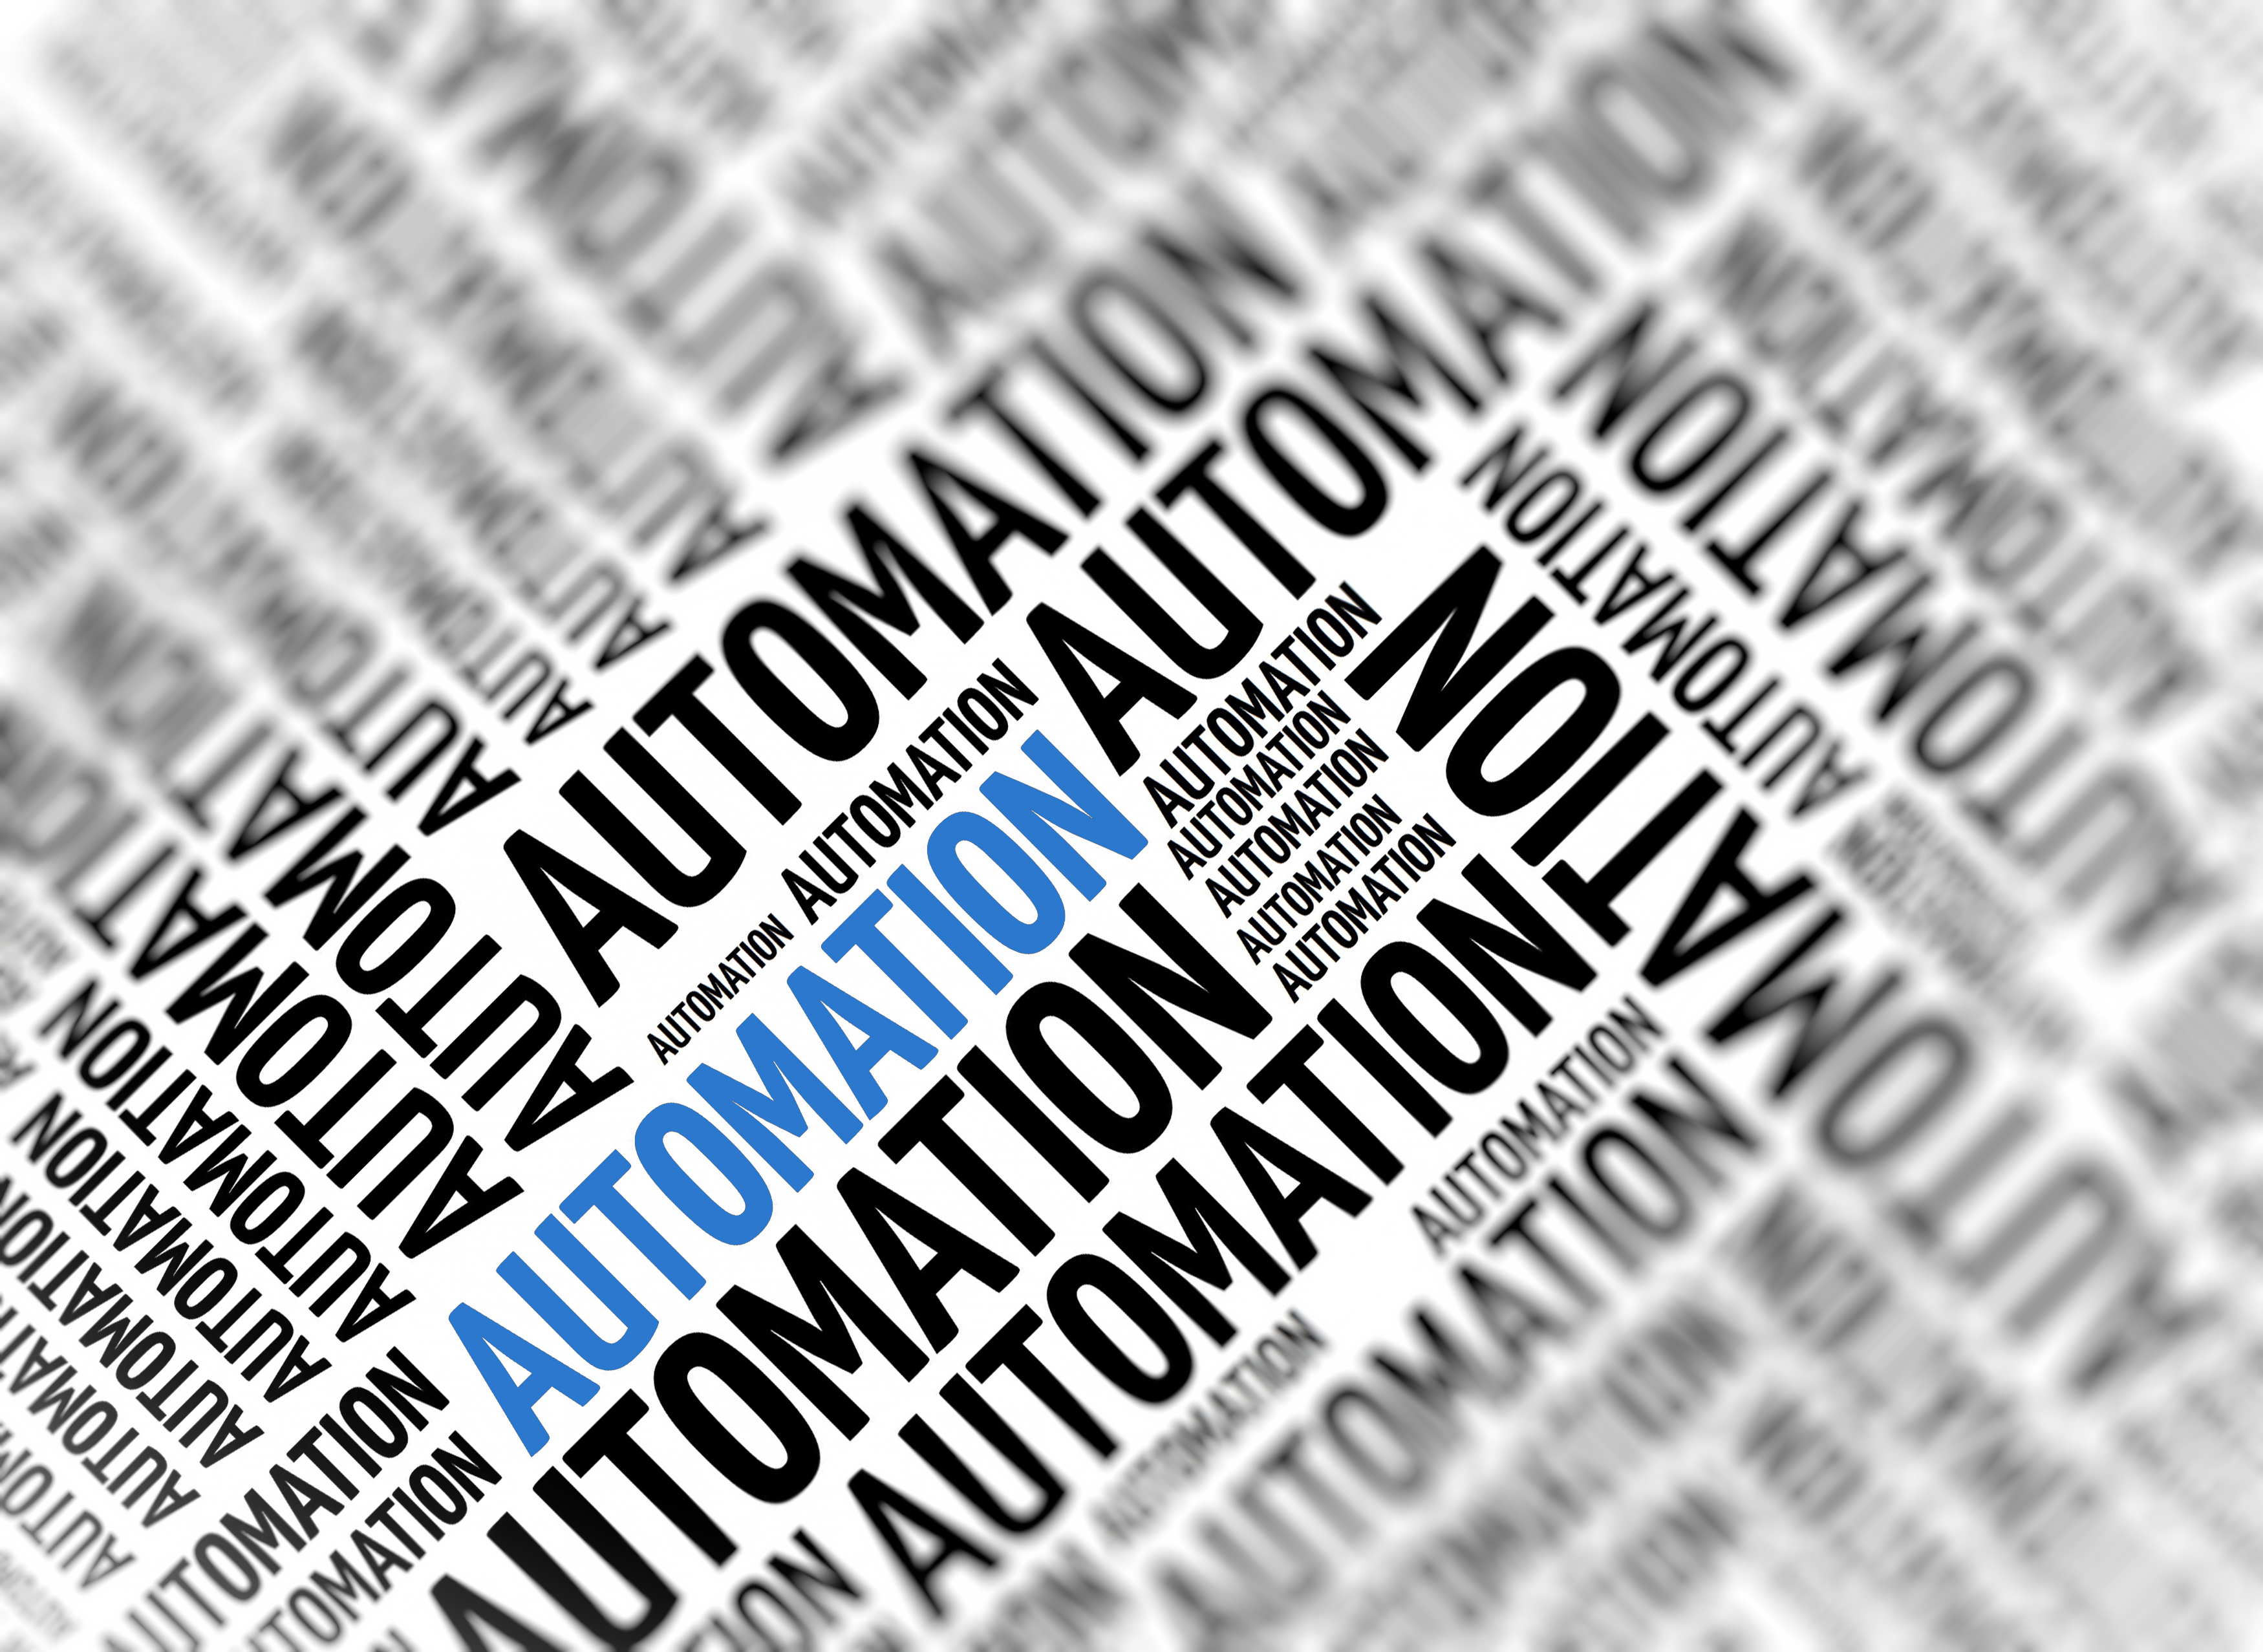 Automating Your Business